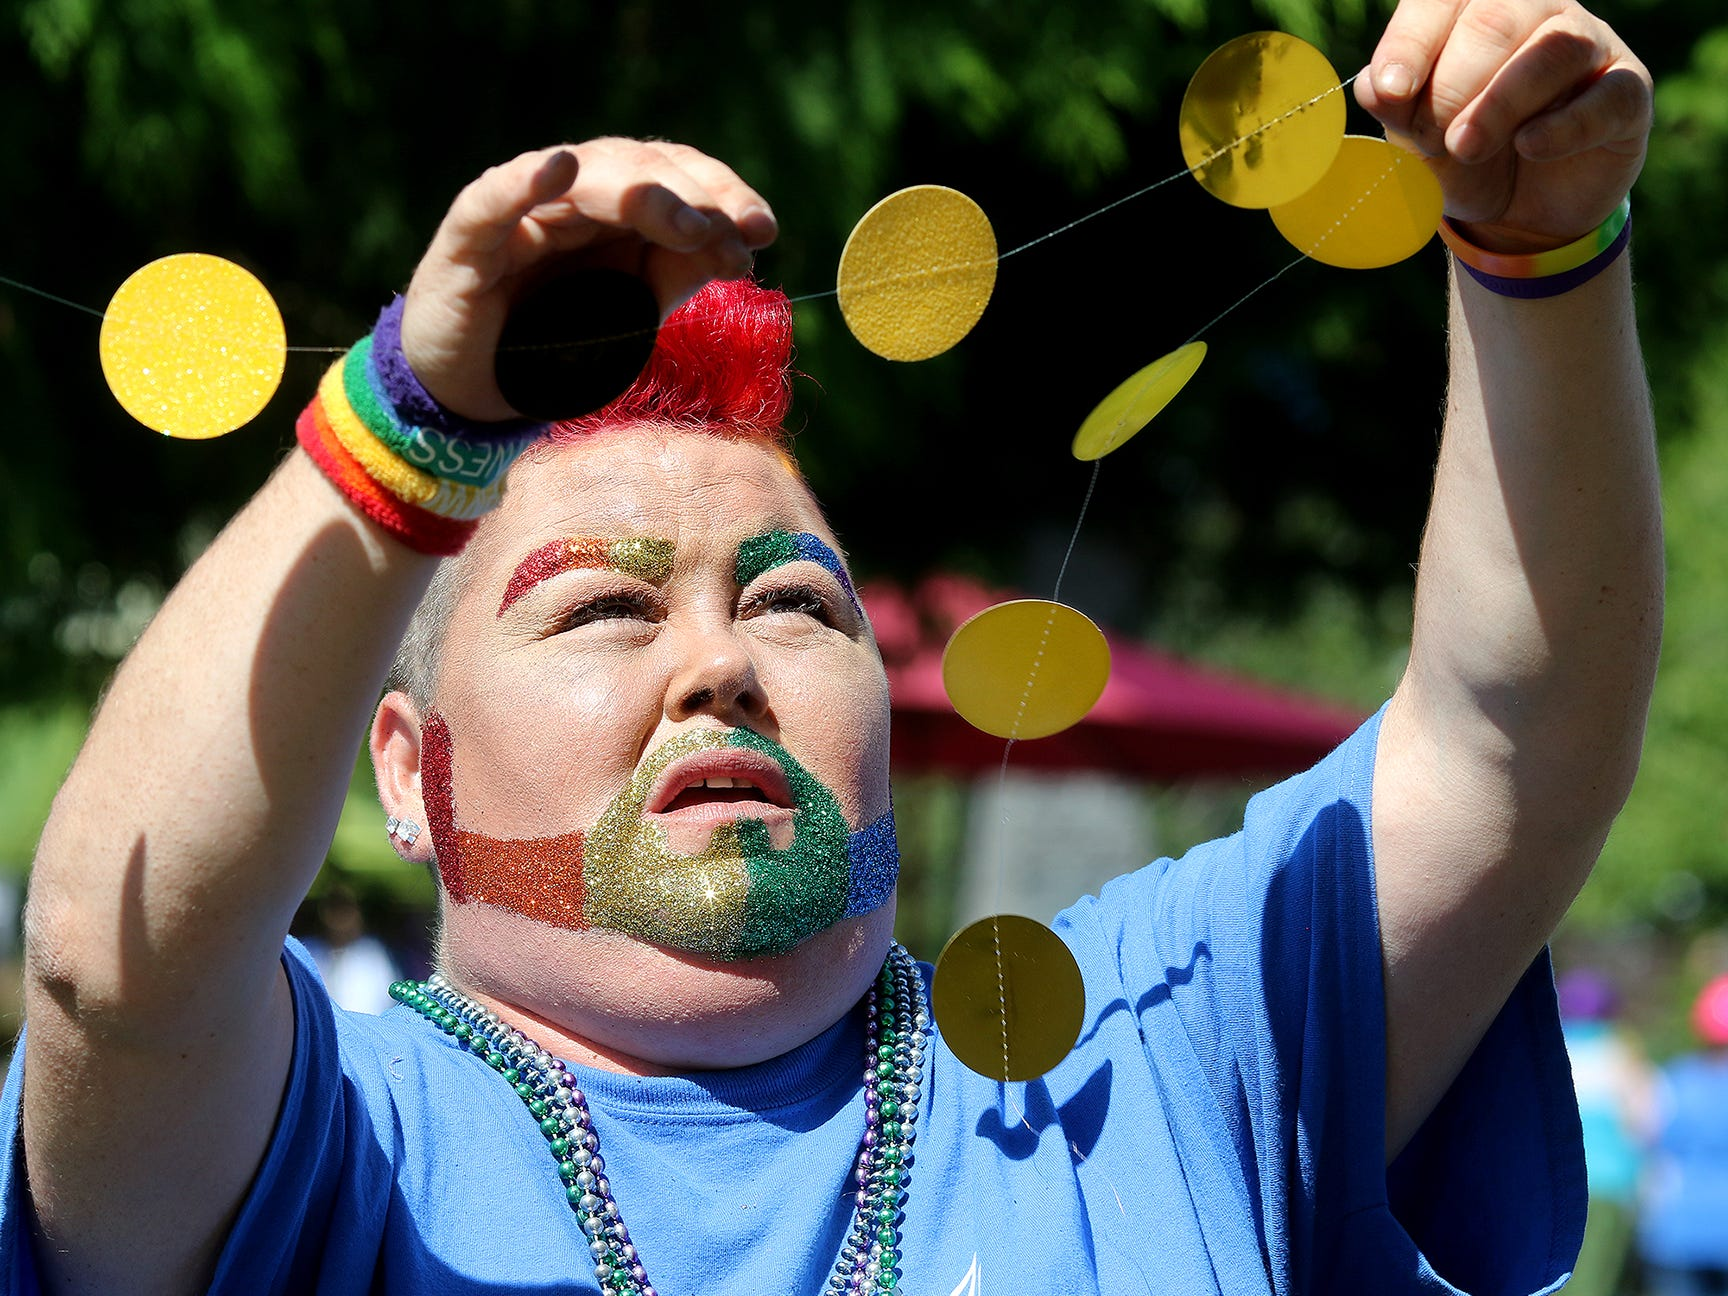 Haley Gregory, of Bremerton, puts out decorations on the Queerly Beloved booth at the Kitsap Pride Festival onSaturday July, 21, 2018 at Evergreen-Rotary Park in Bremerton.